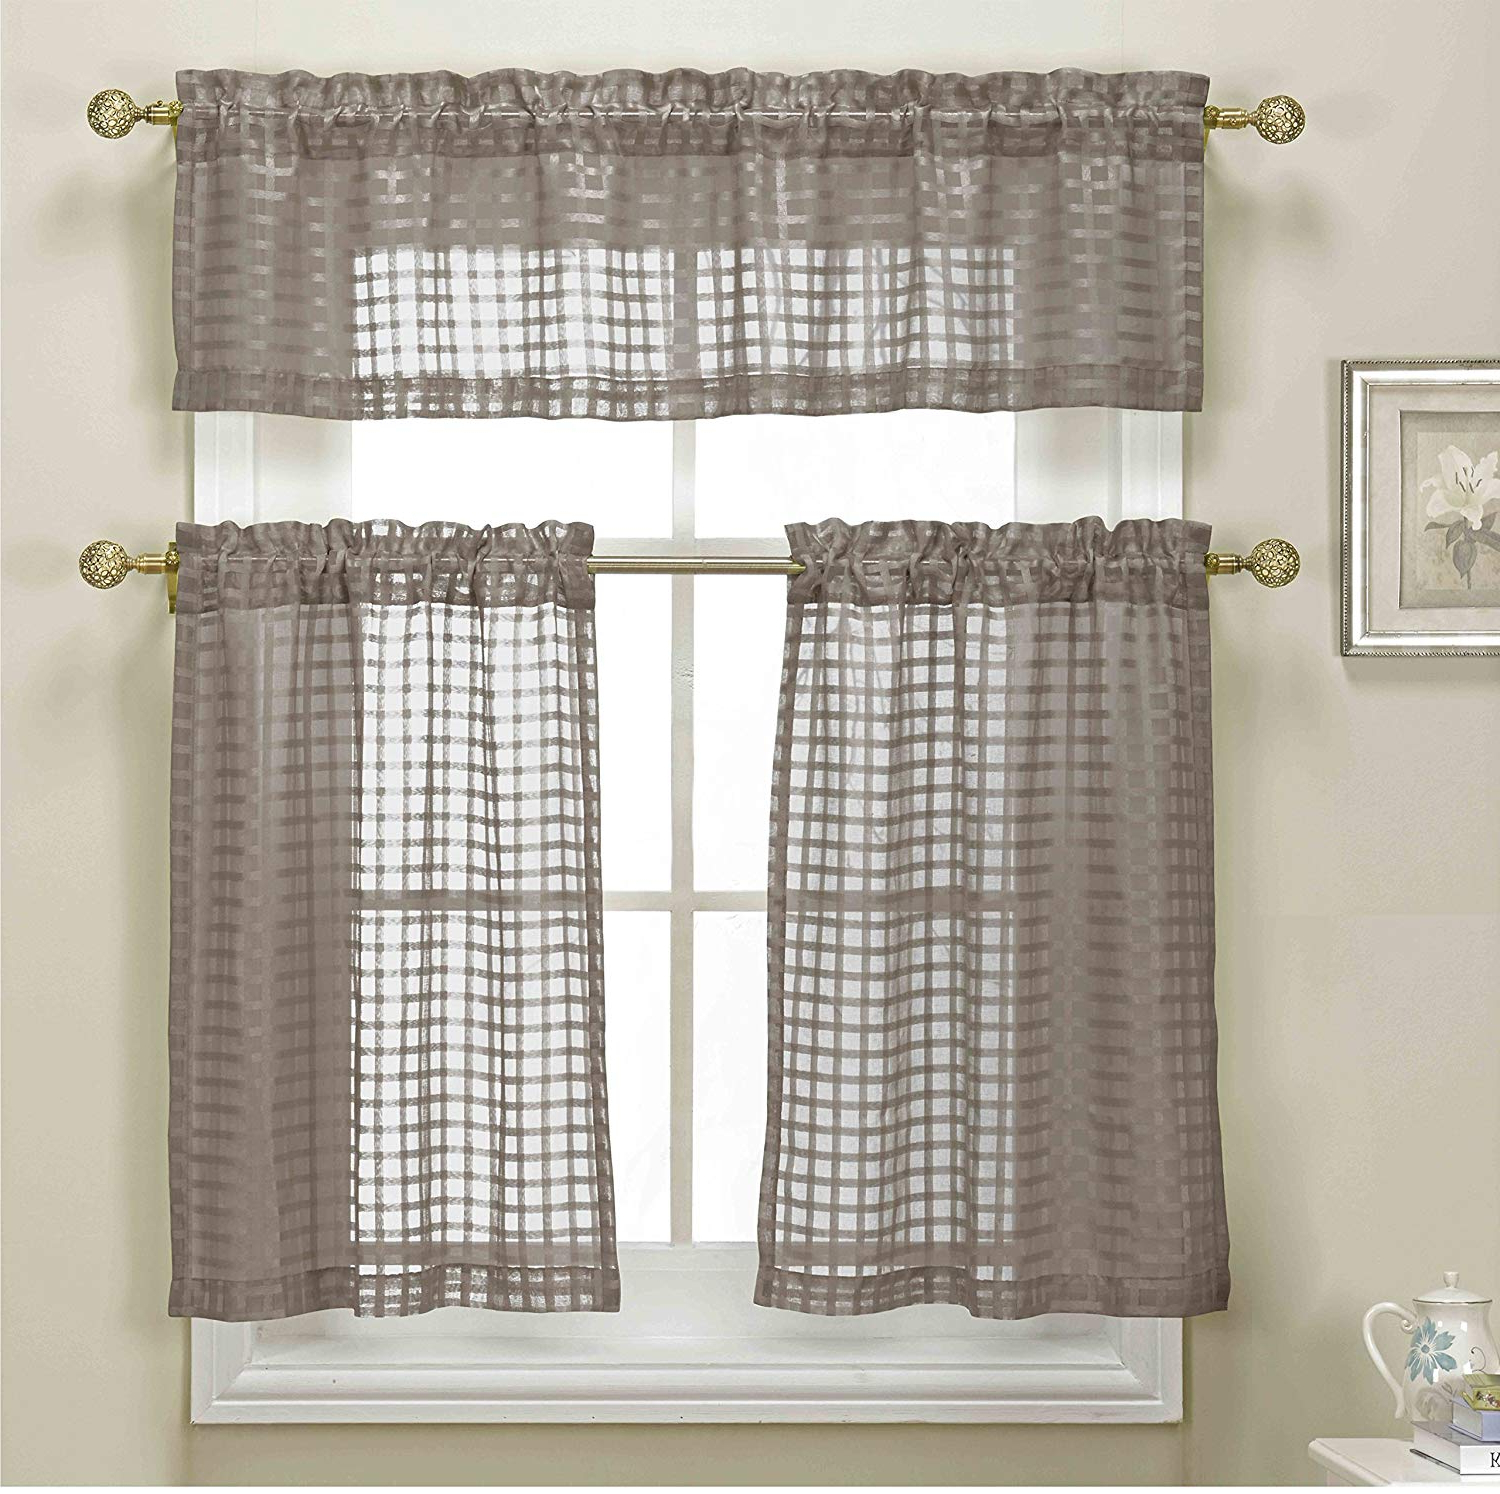 3 Piece Chocolate Brown Sheer Kitchen Curtain Set: Woven Check Design, 1 Valance, 2 Tier Panels (chocolate Brown) Throughout Most Recently Released Tree Branch Valance And Tiers Sets (View 7 of 20)